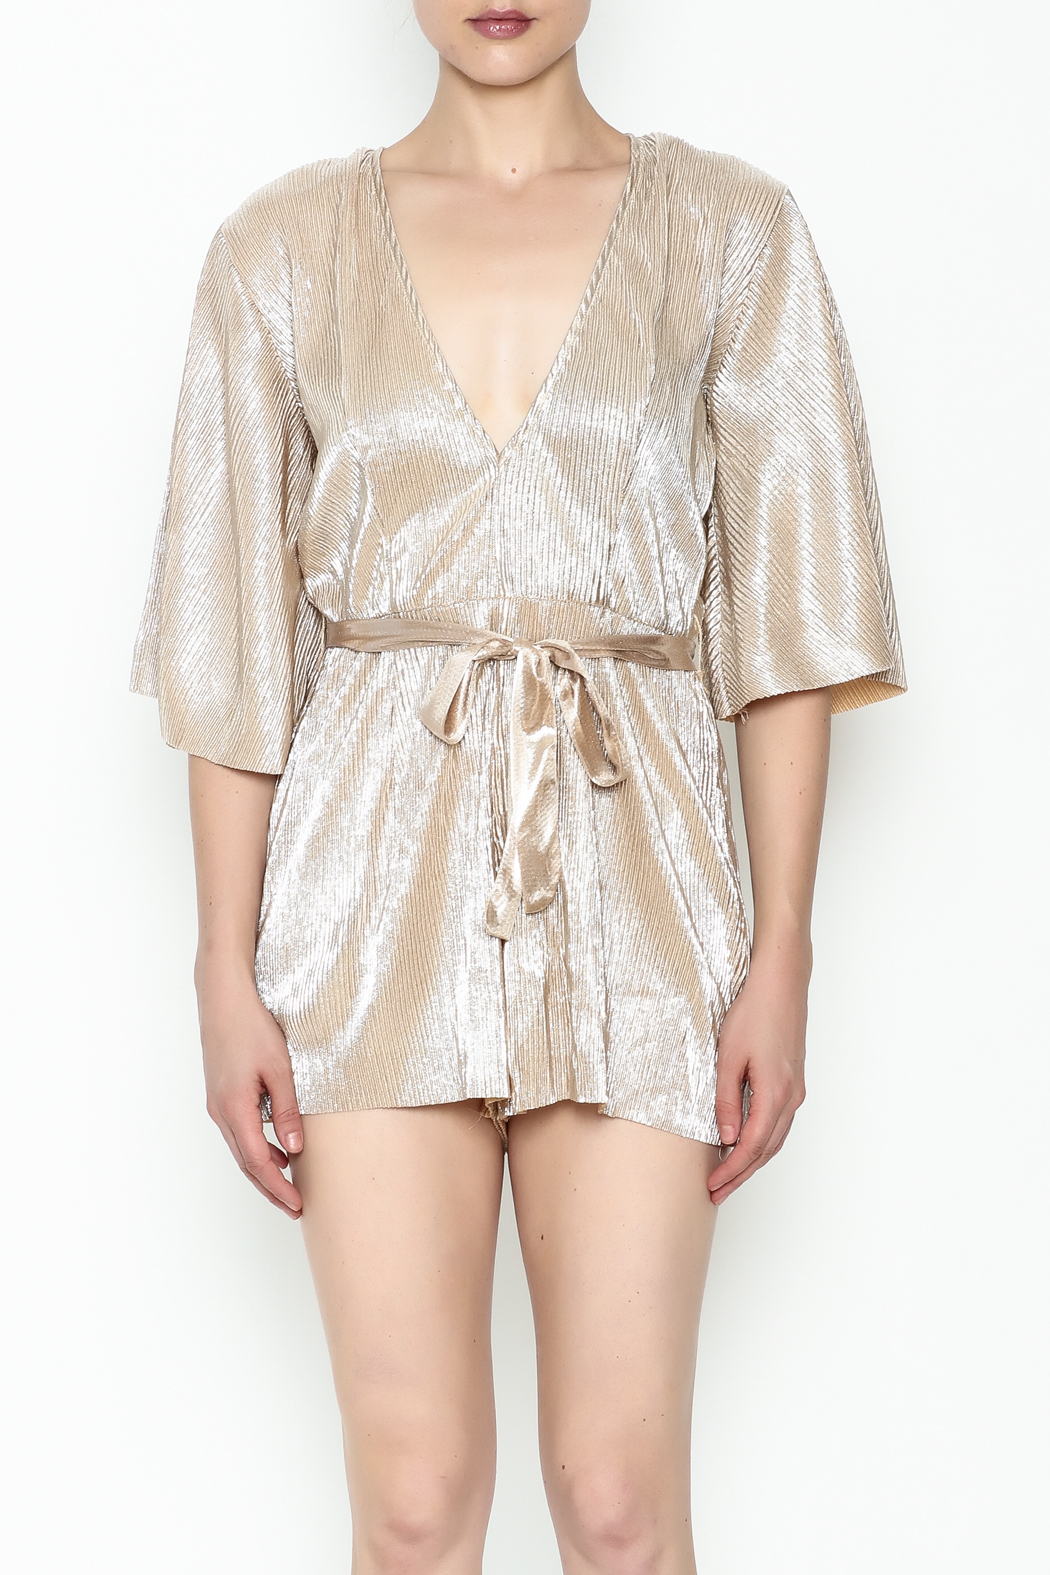 Do & Be Metallic Short Sleeved Romper - Front Full Image